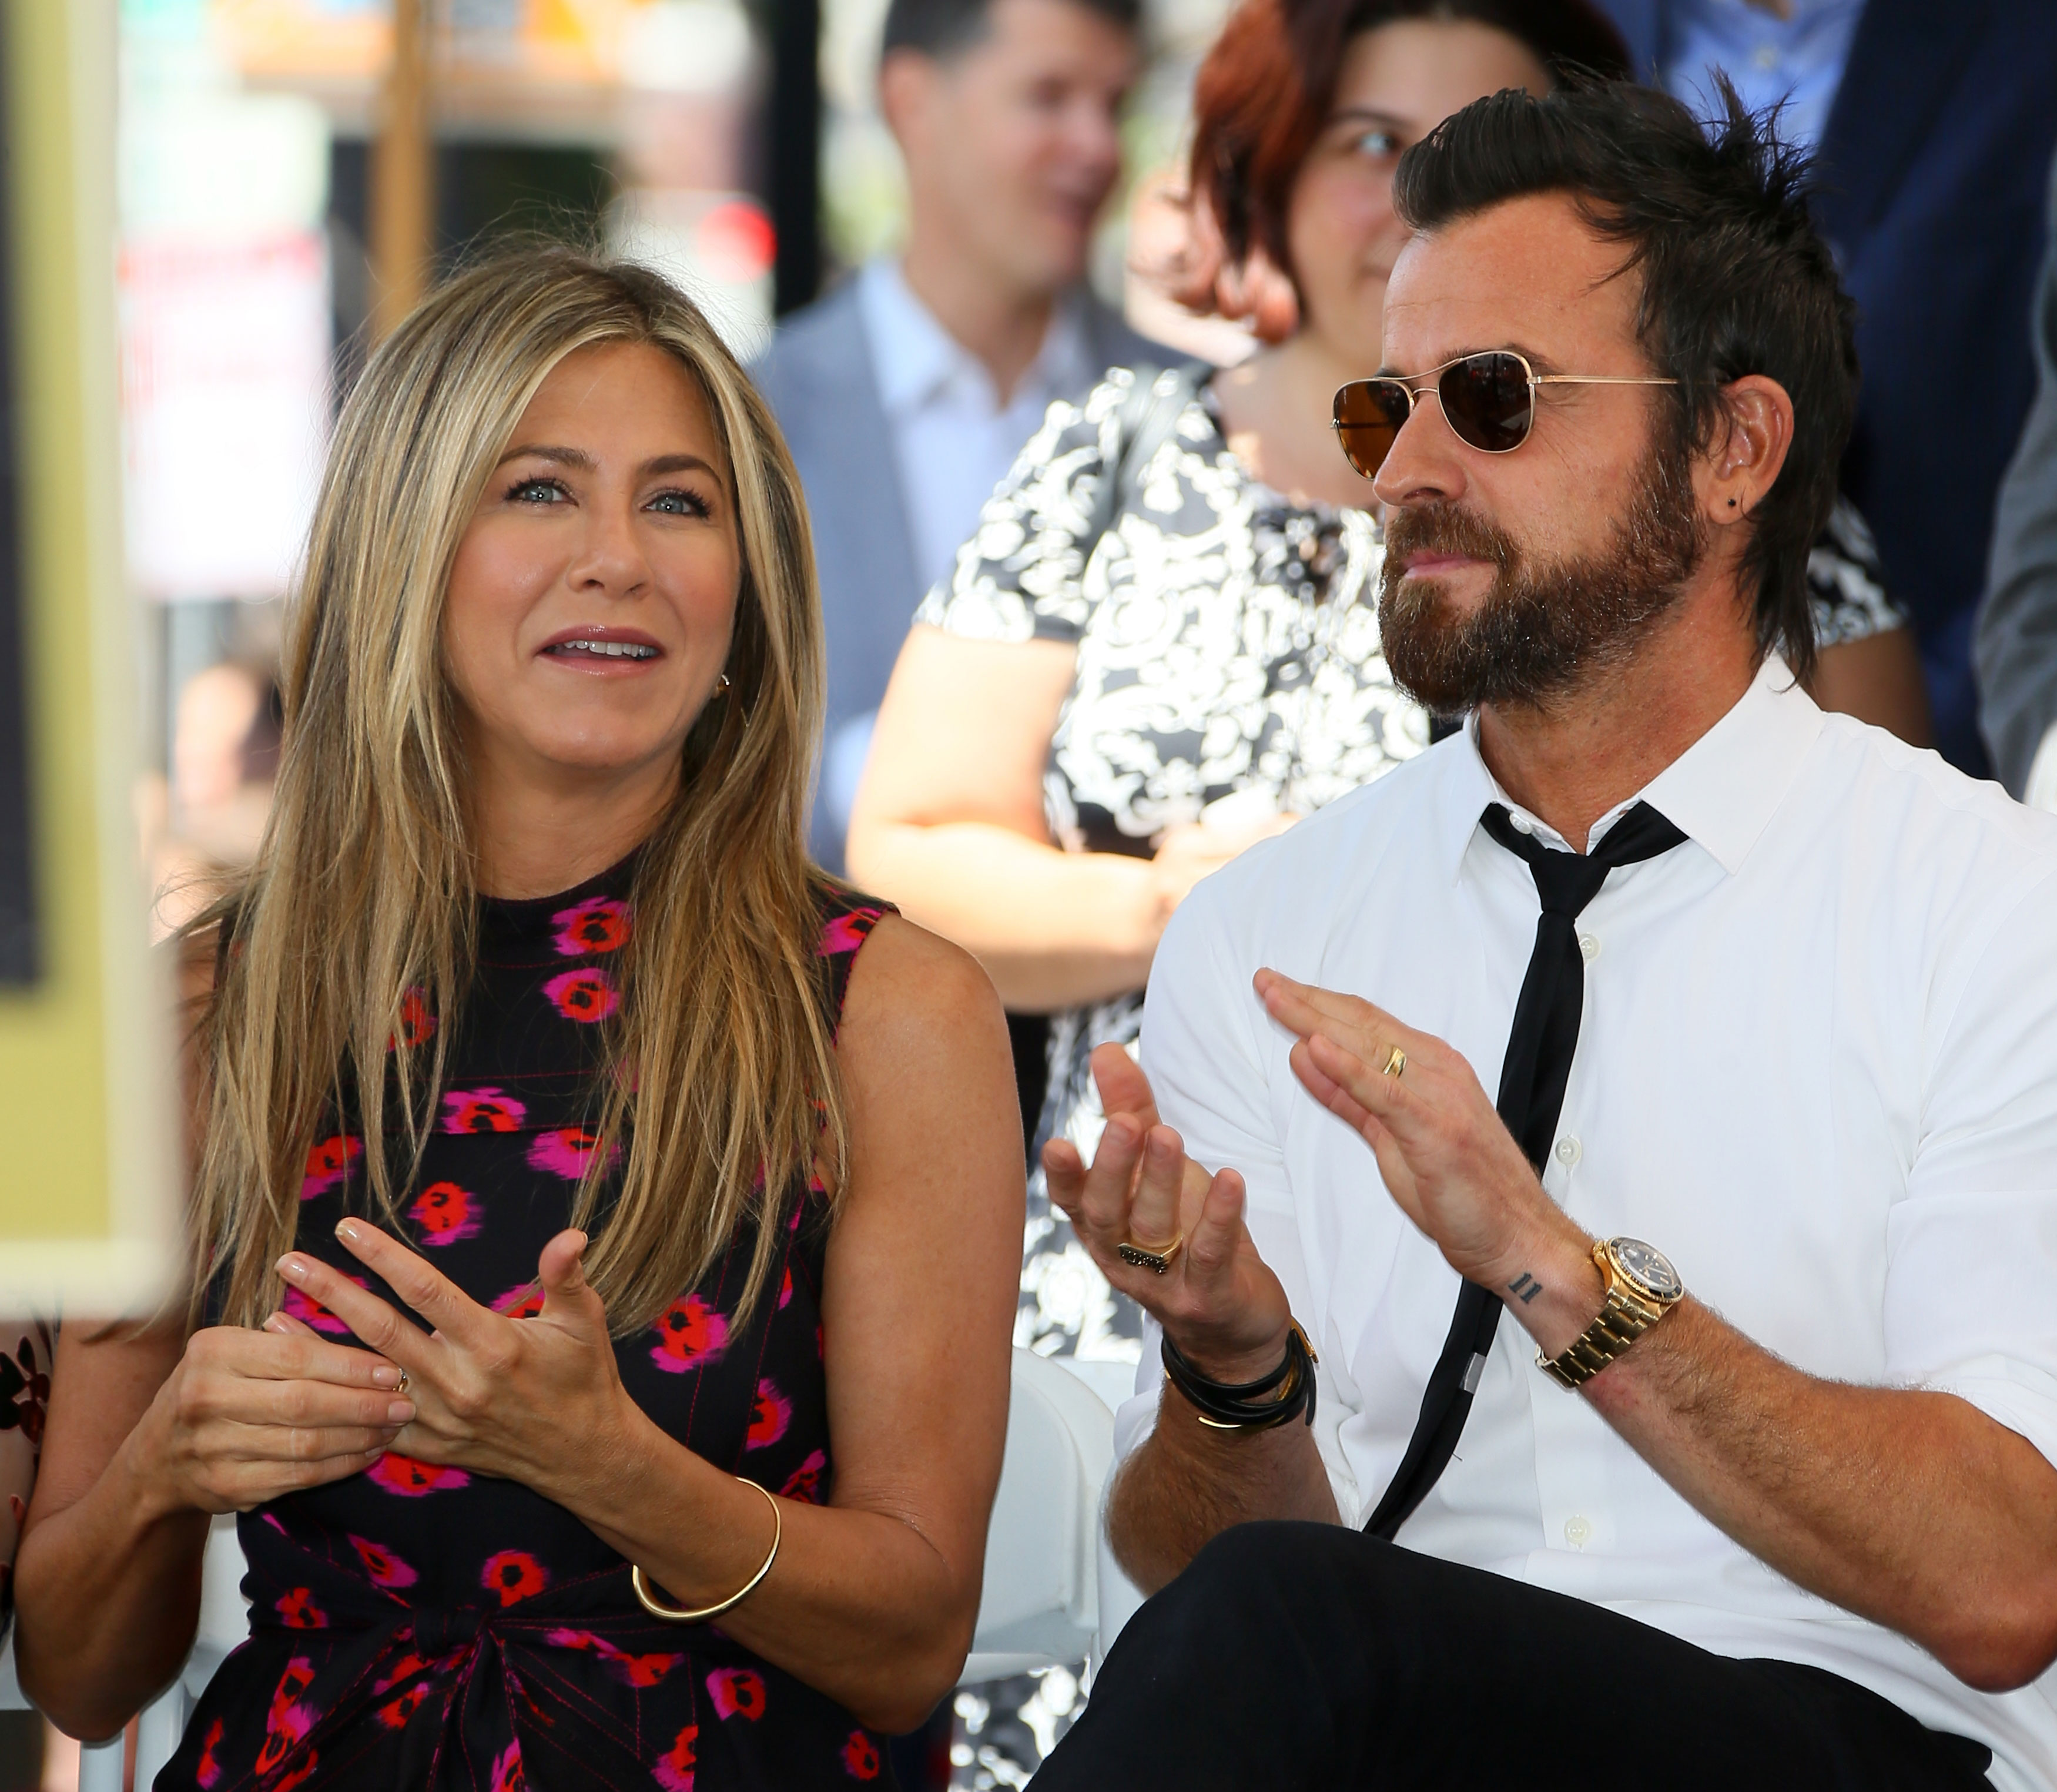 """Brad Pitt and Jennifer Aniston Relationship Timeline - The comedic actress and the Spy Who Dumped Me actor announced their split on February 15, 2018. """"In an effort to reduce any further speculation, we have decided to announce our separation,"""" their statement to Us Weekly read."""